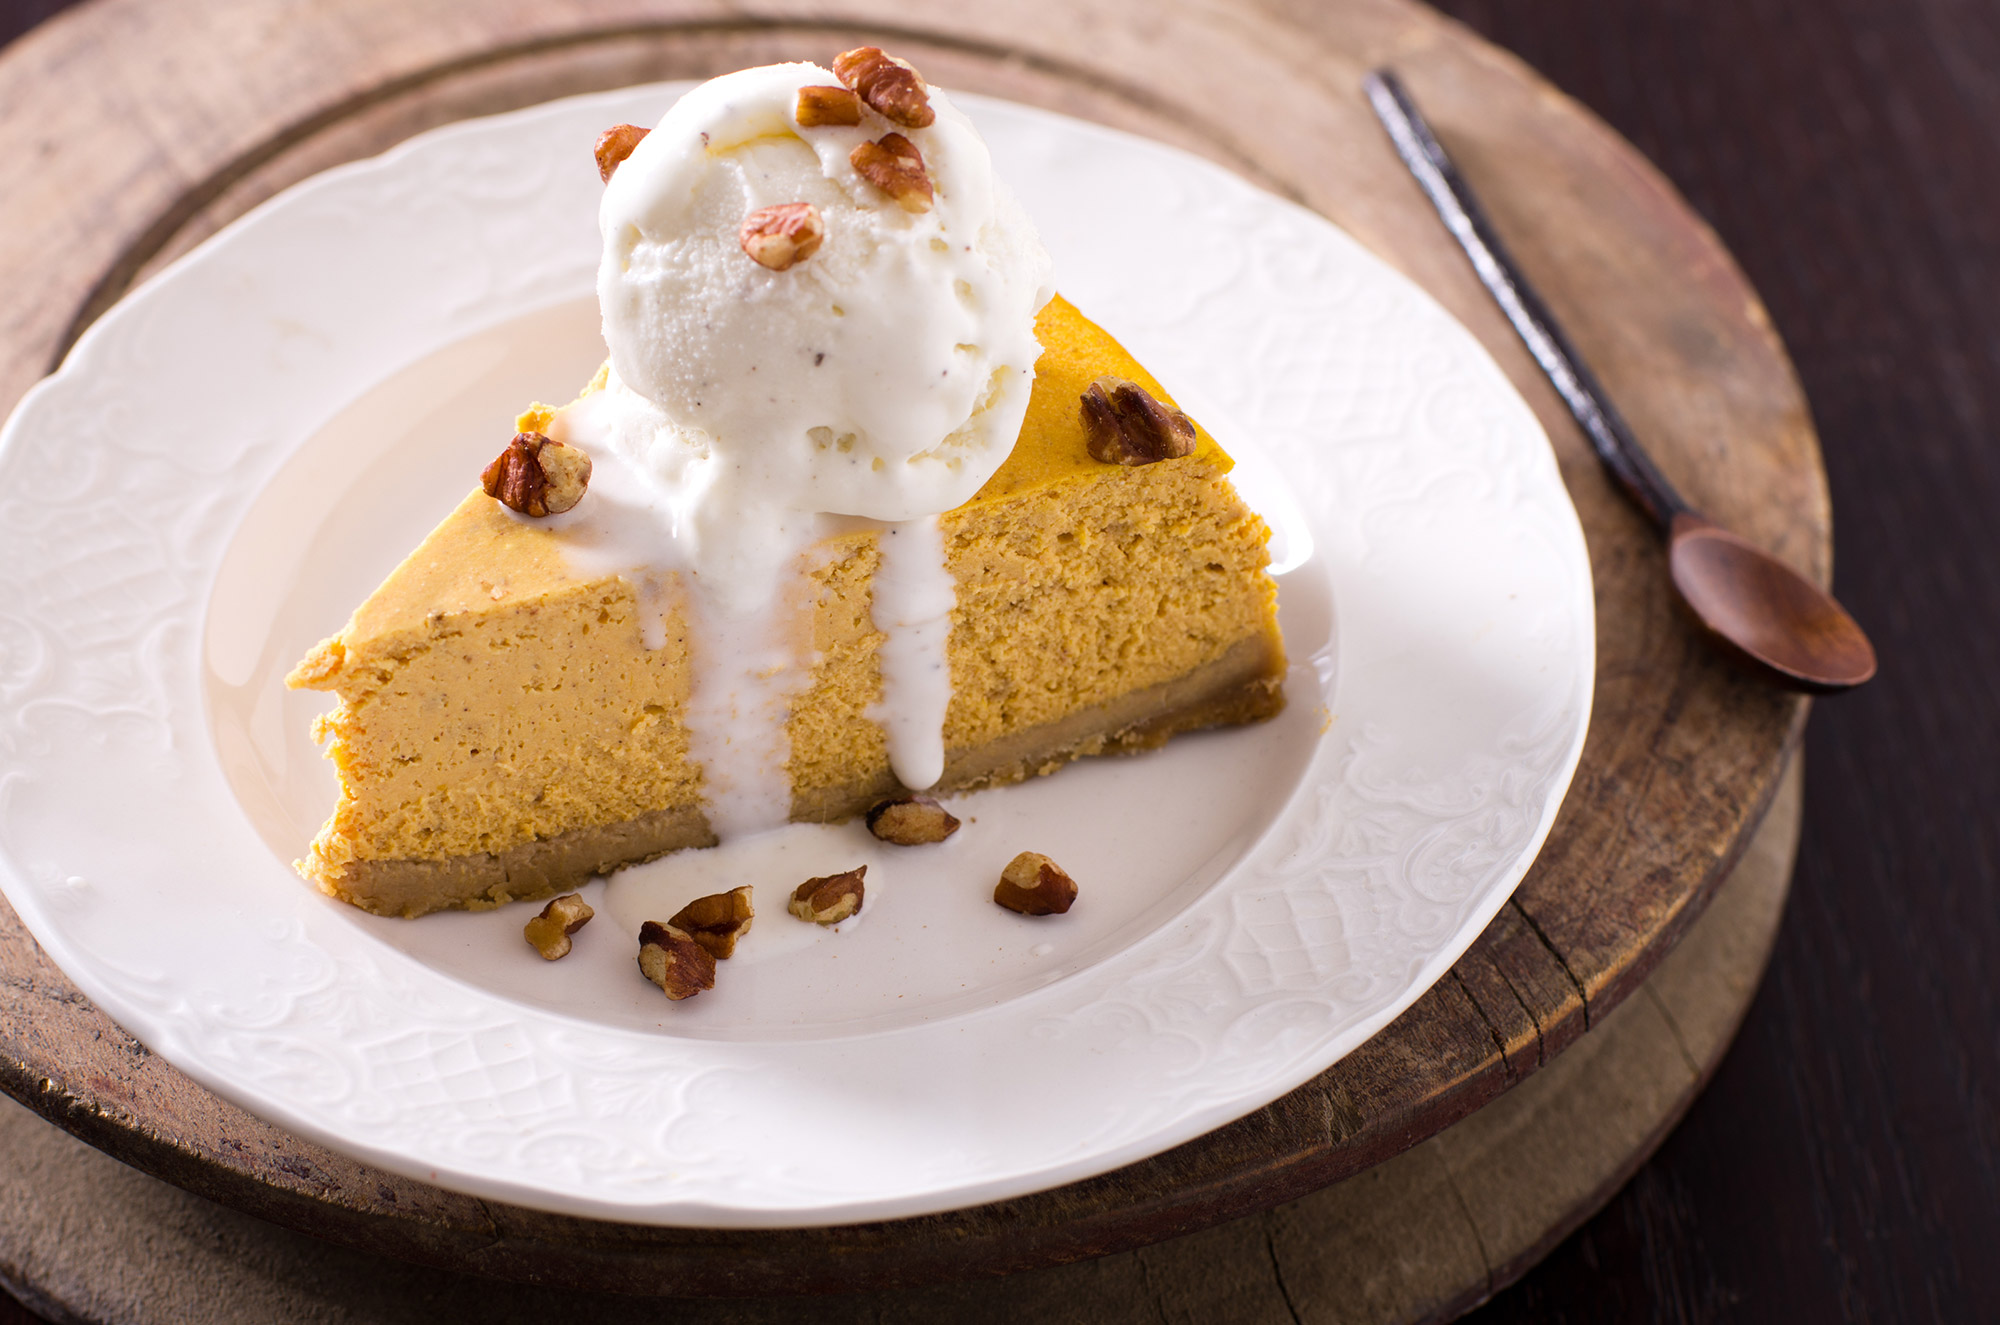 Pumpkin cheese cake with vanilla ice cream